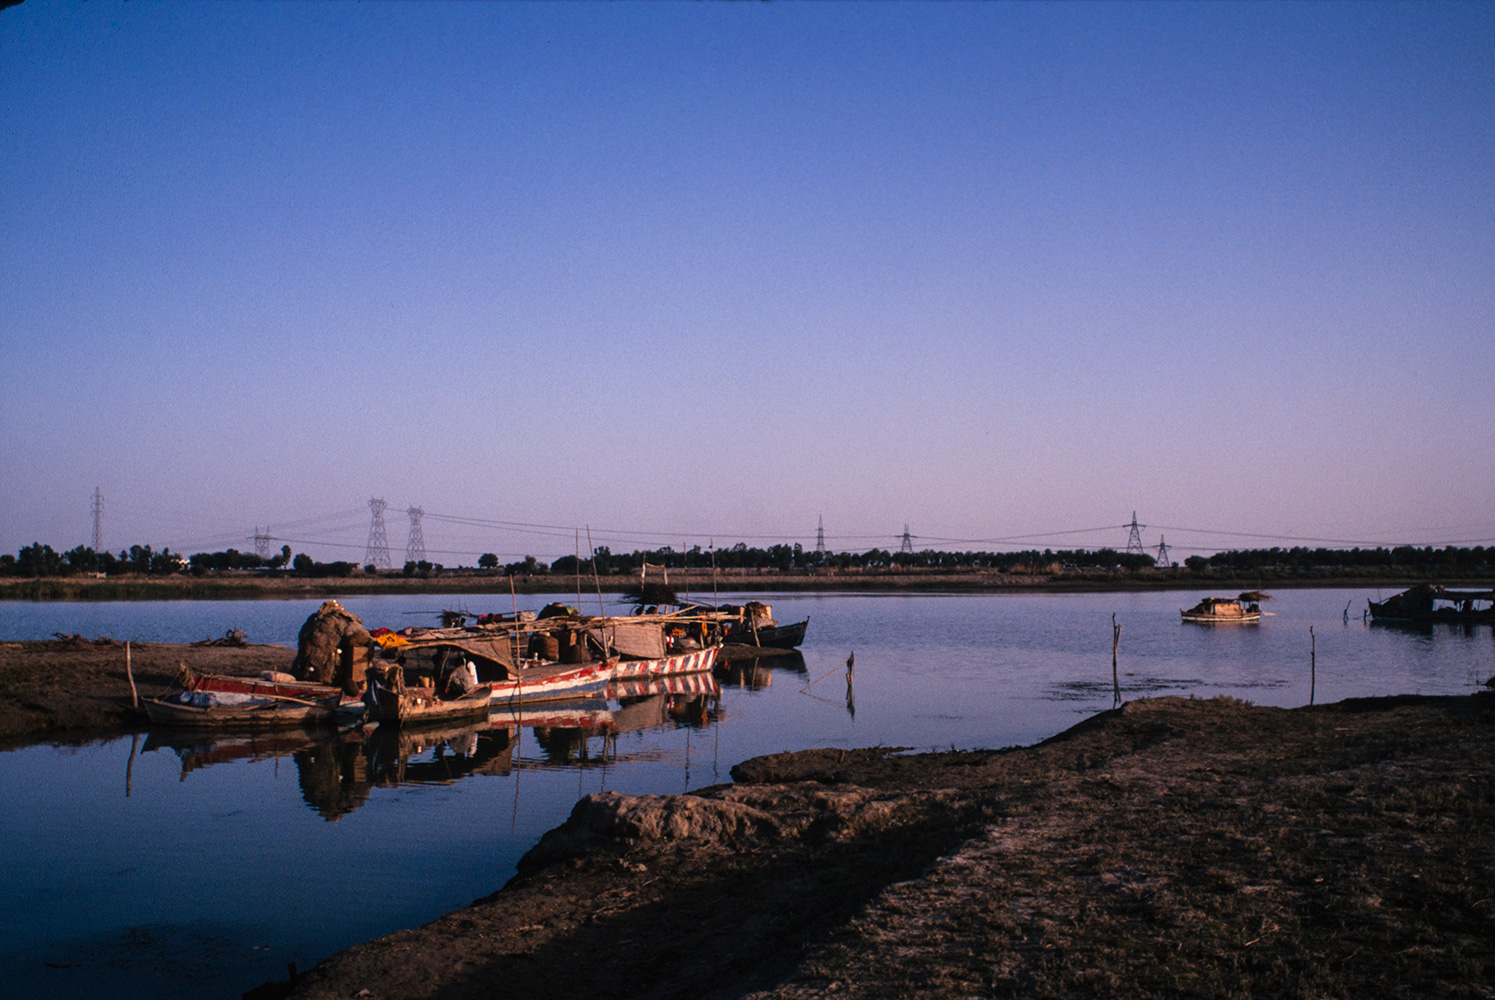 indus_panjnad_boats_sunset_97RVP